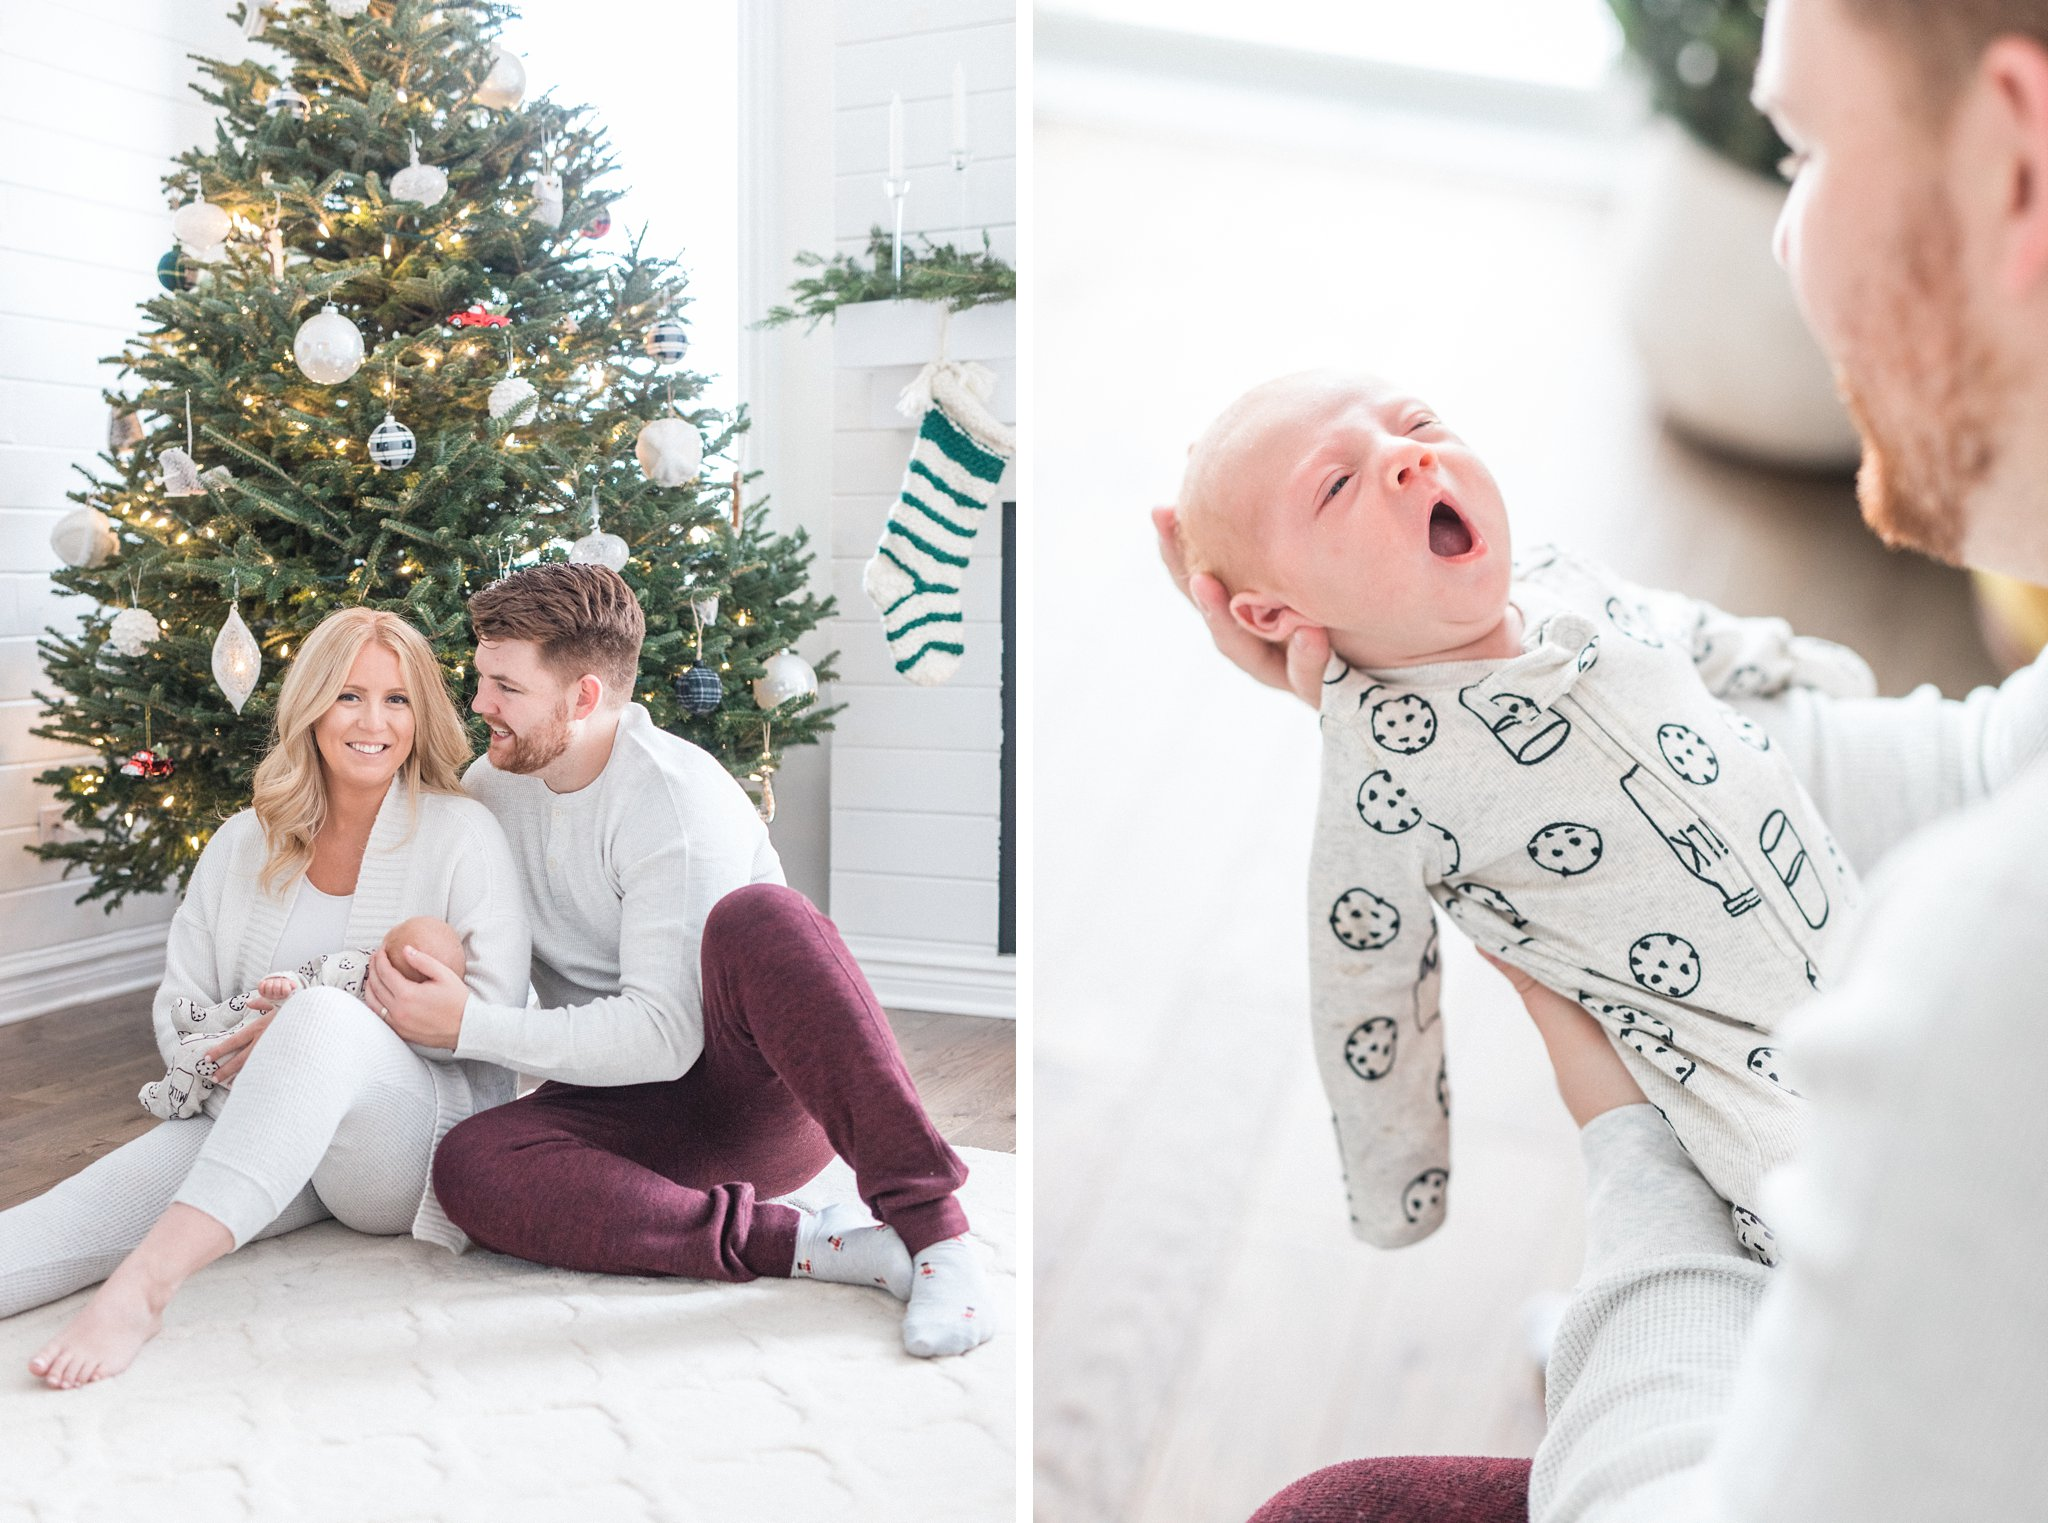 Christmas tree photo by the fireplace, Festive Newborn Lifestyle Photos During the Christmas Holidays